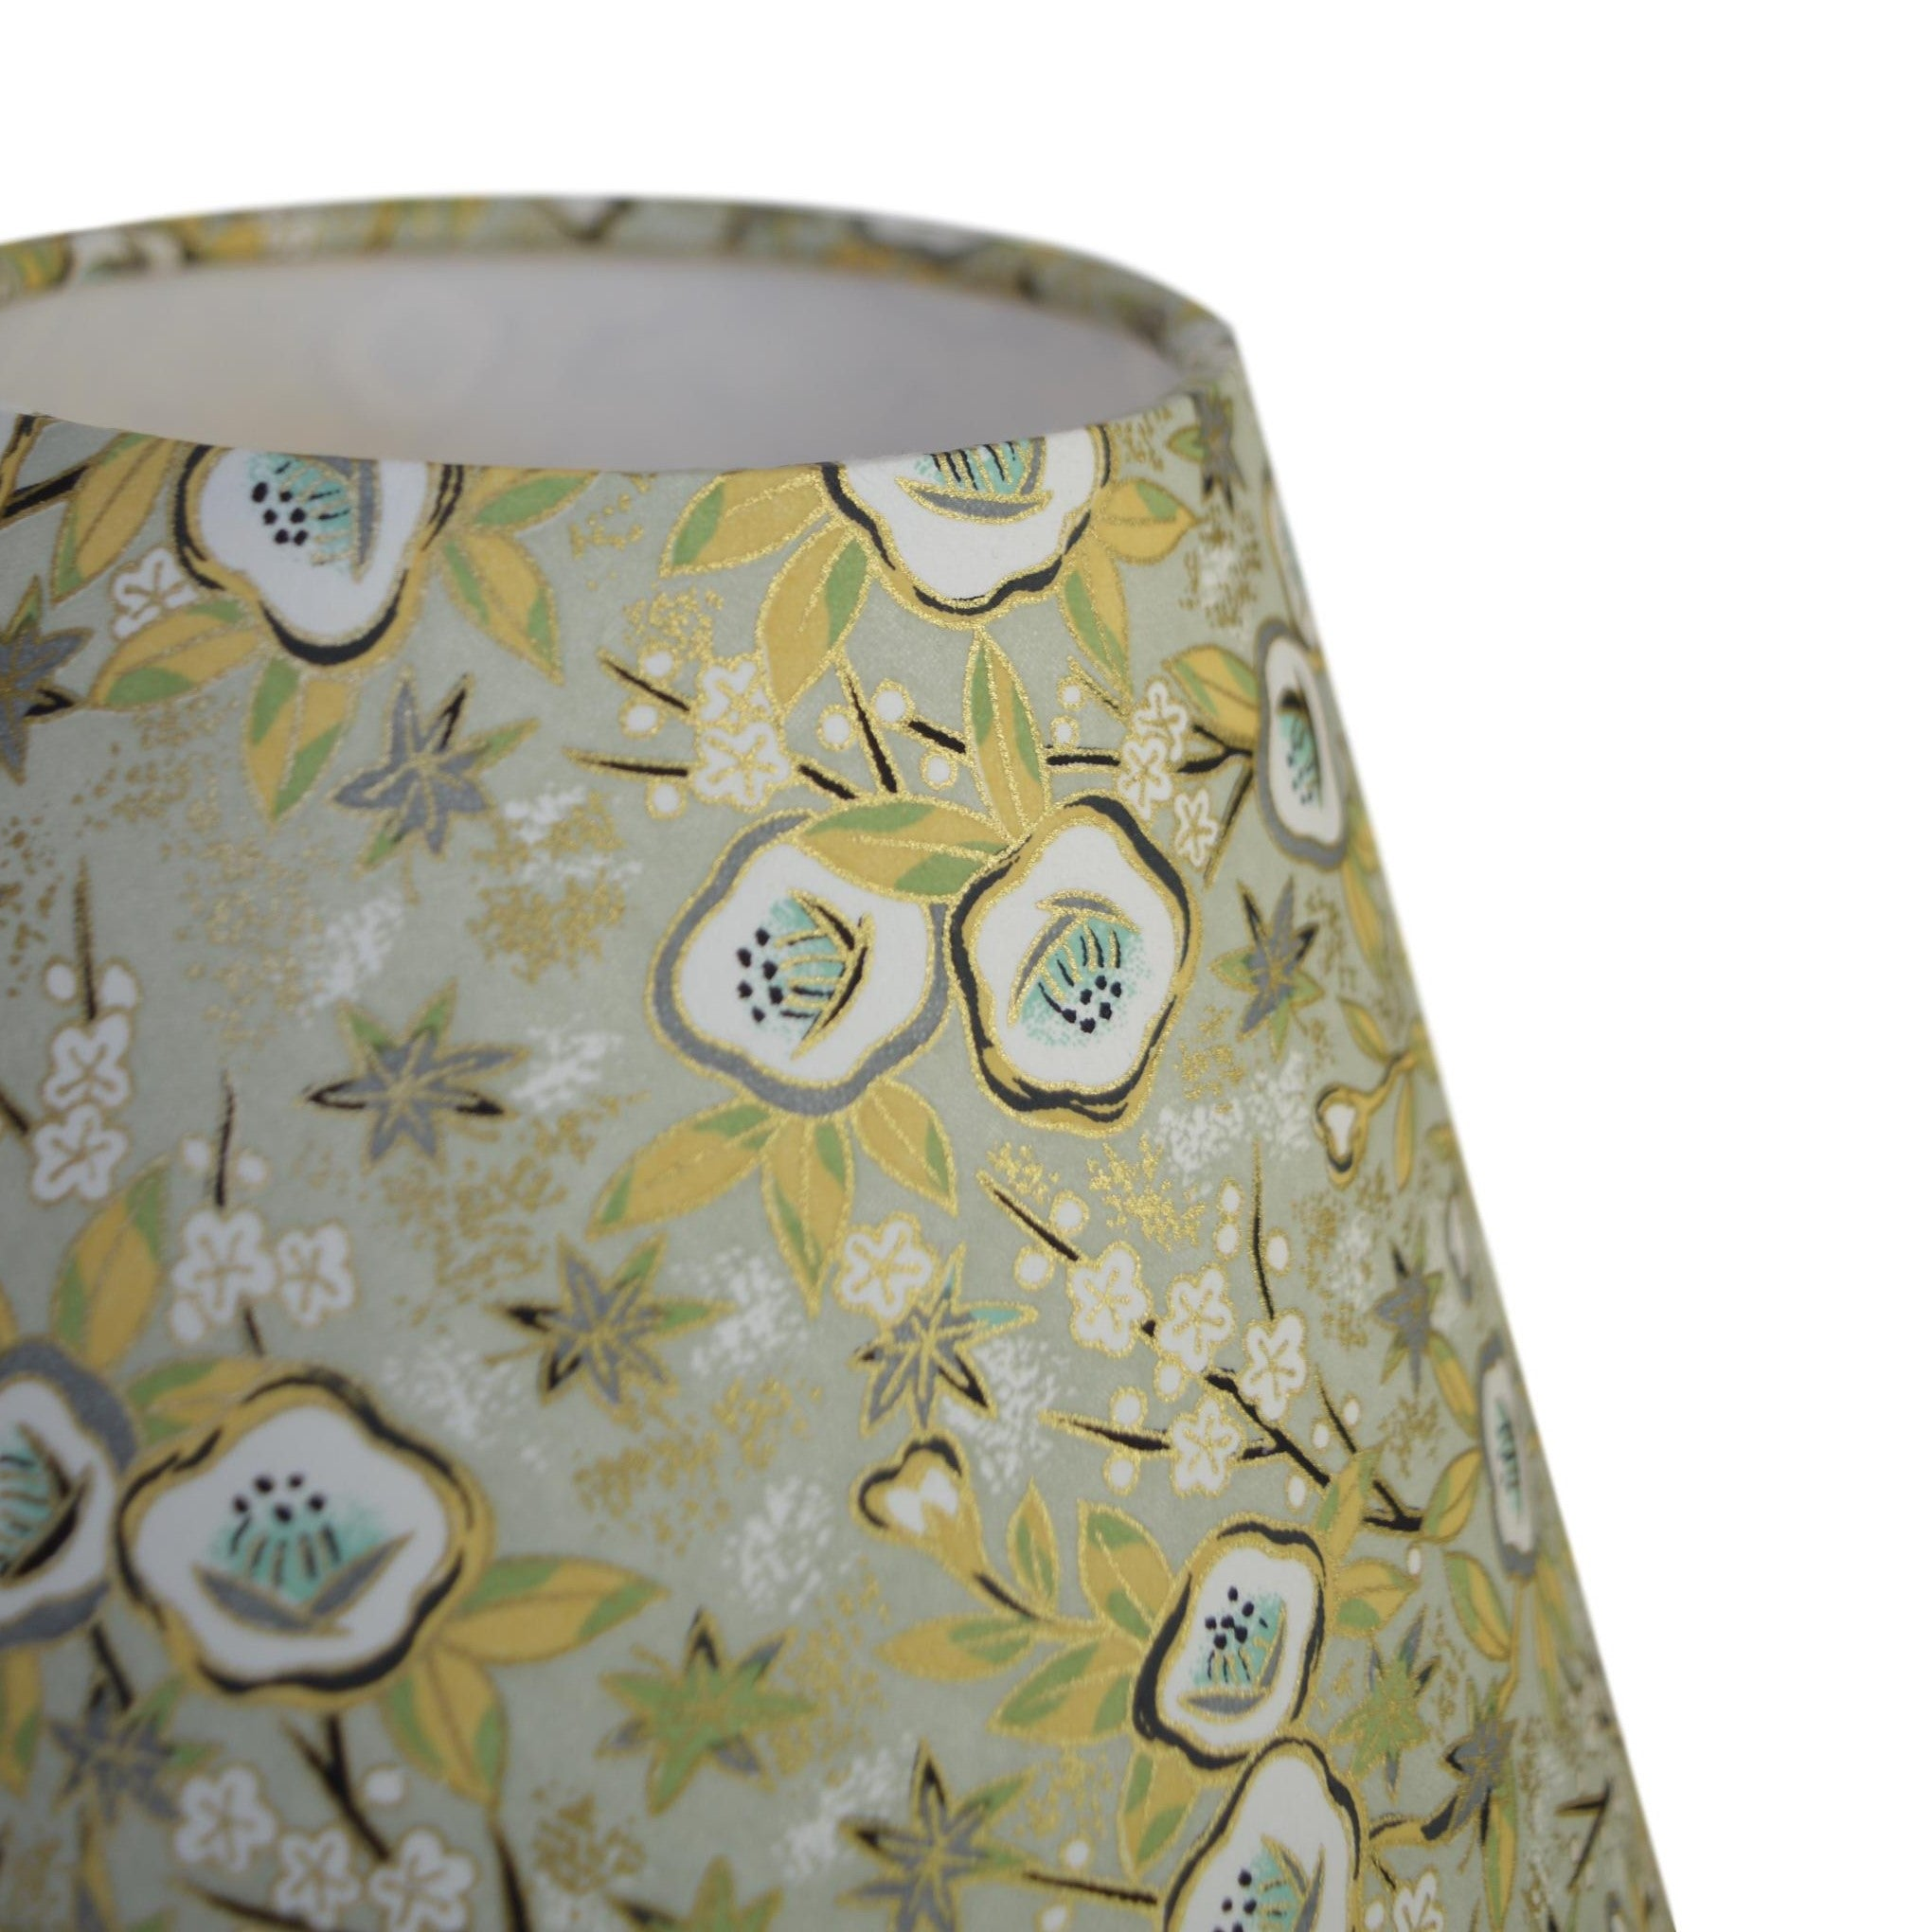 Munro and Kerr chiyogami paper for making into a tapered empire lampshade